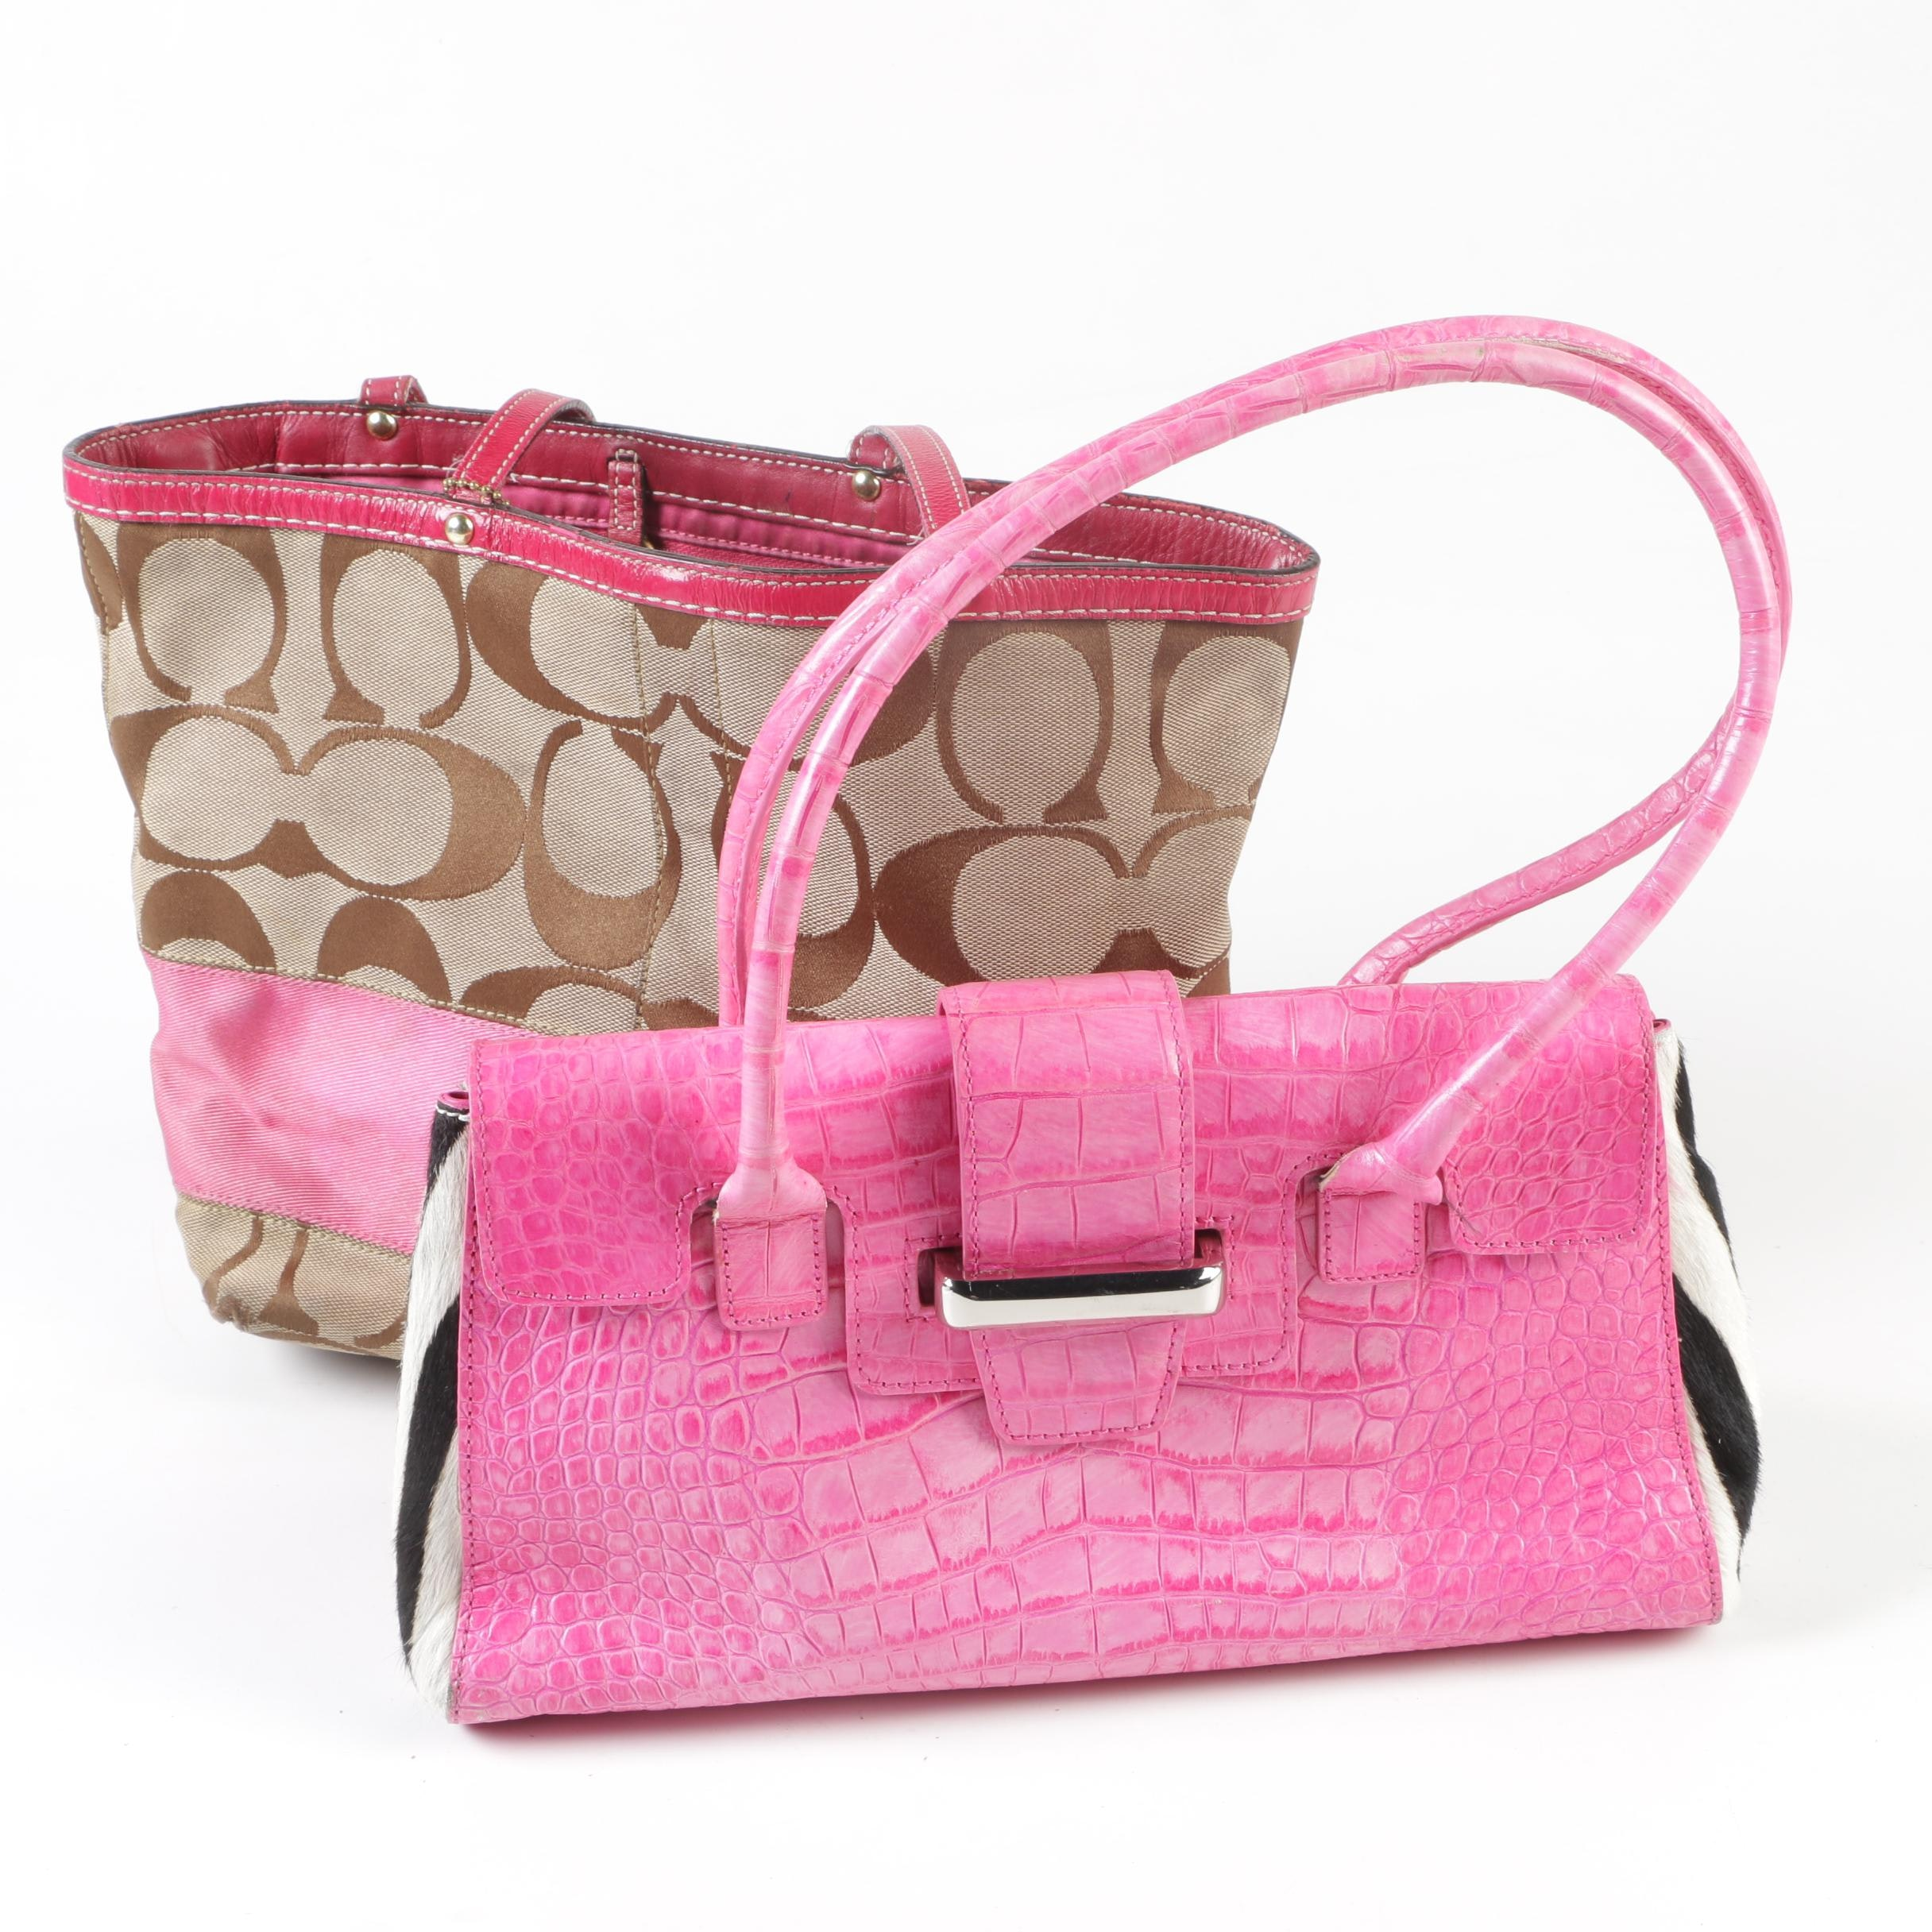 Coach Signature Jacquard Tote and Adrienne Vittadini Calf Hair and Leather Bag